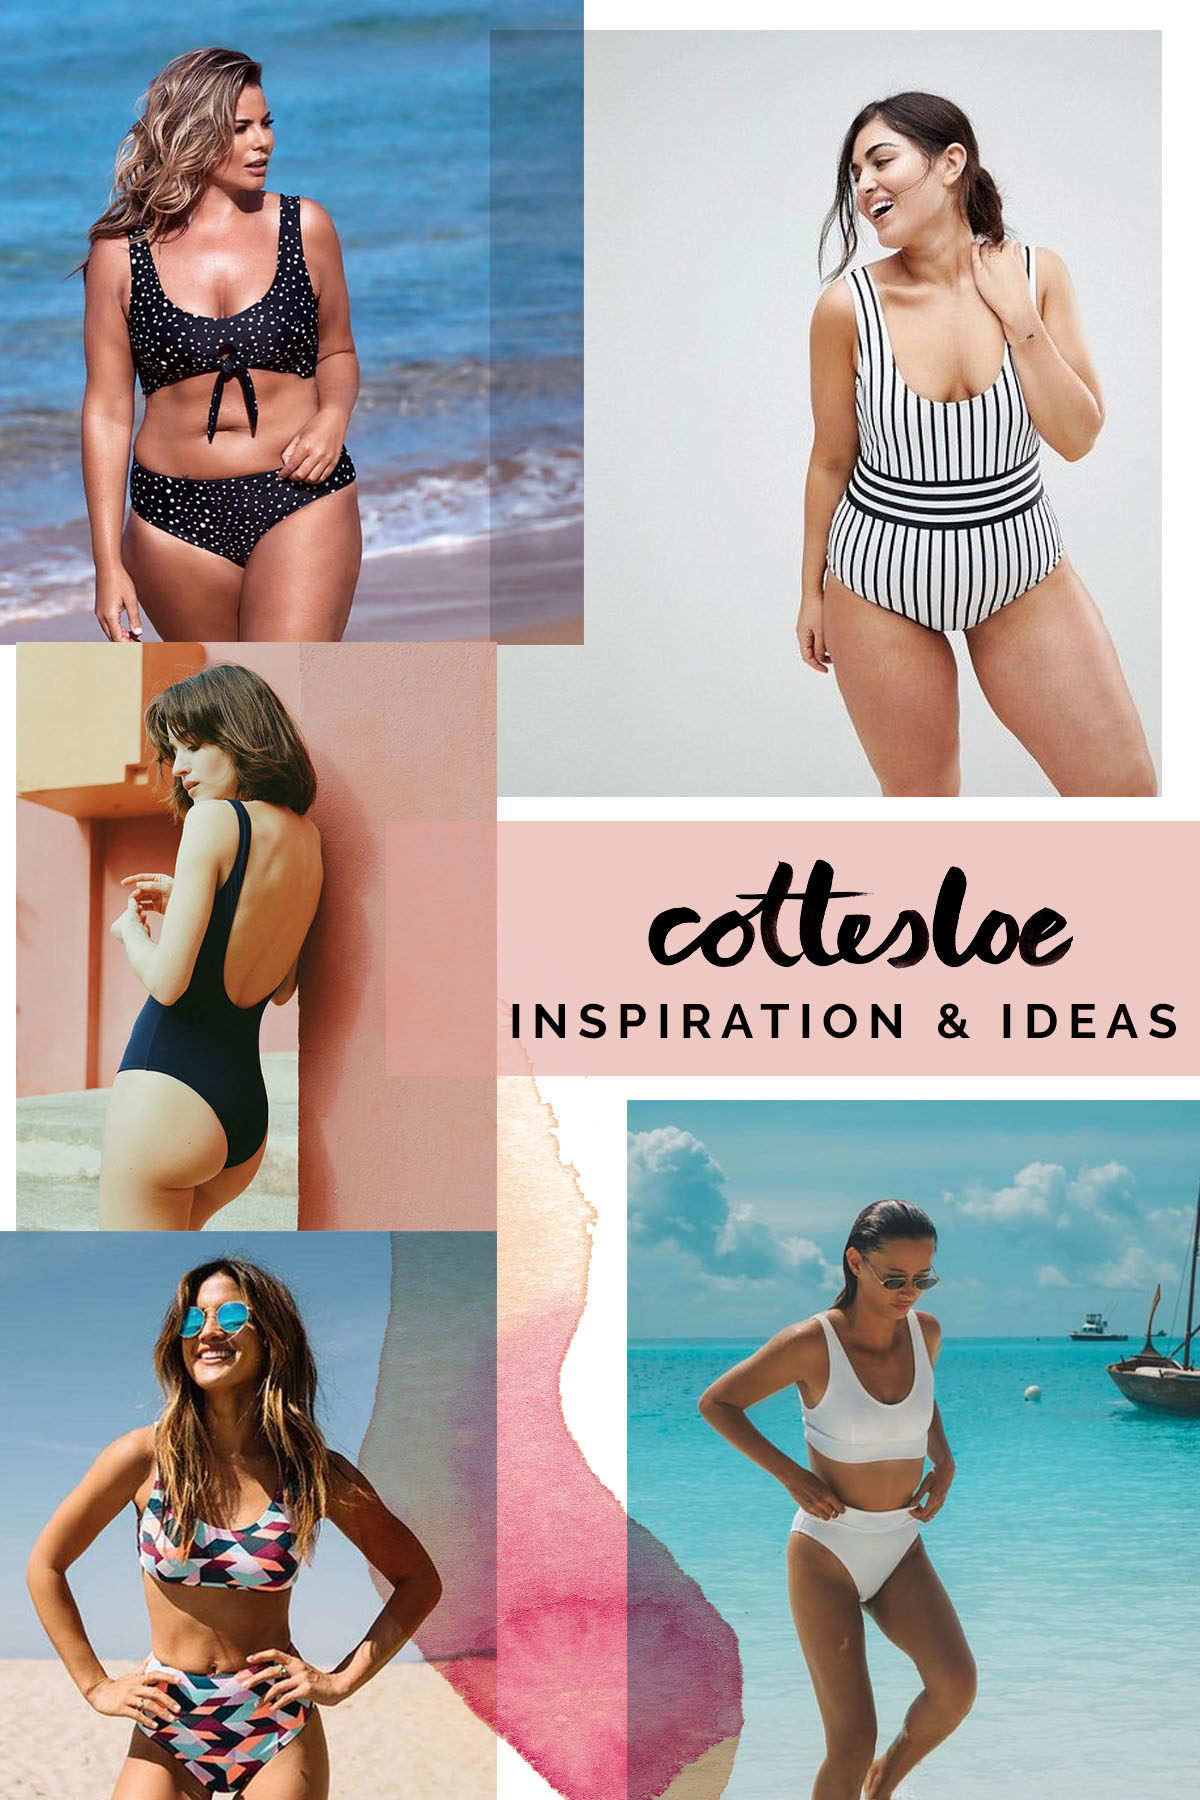 COTTESLOE INSPIRATION & IDEAS